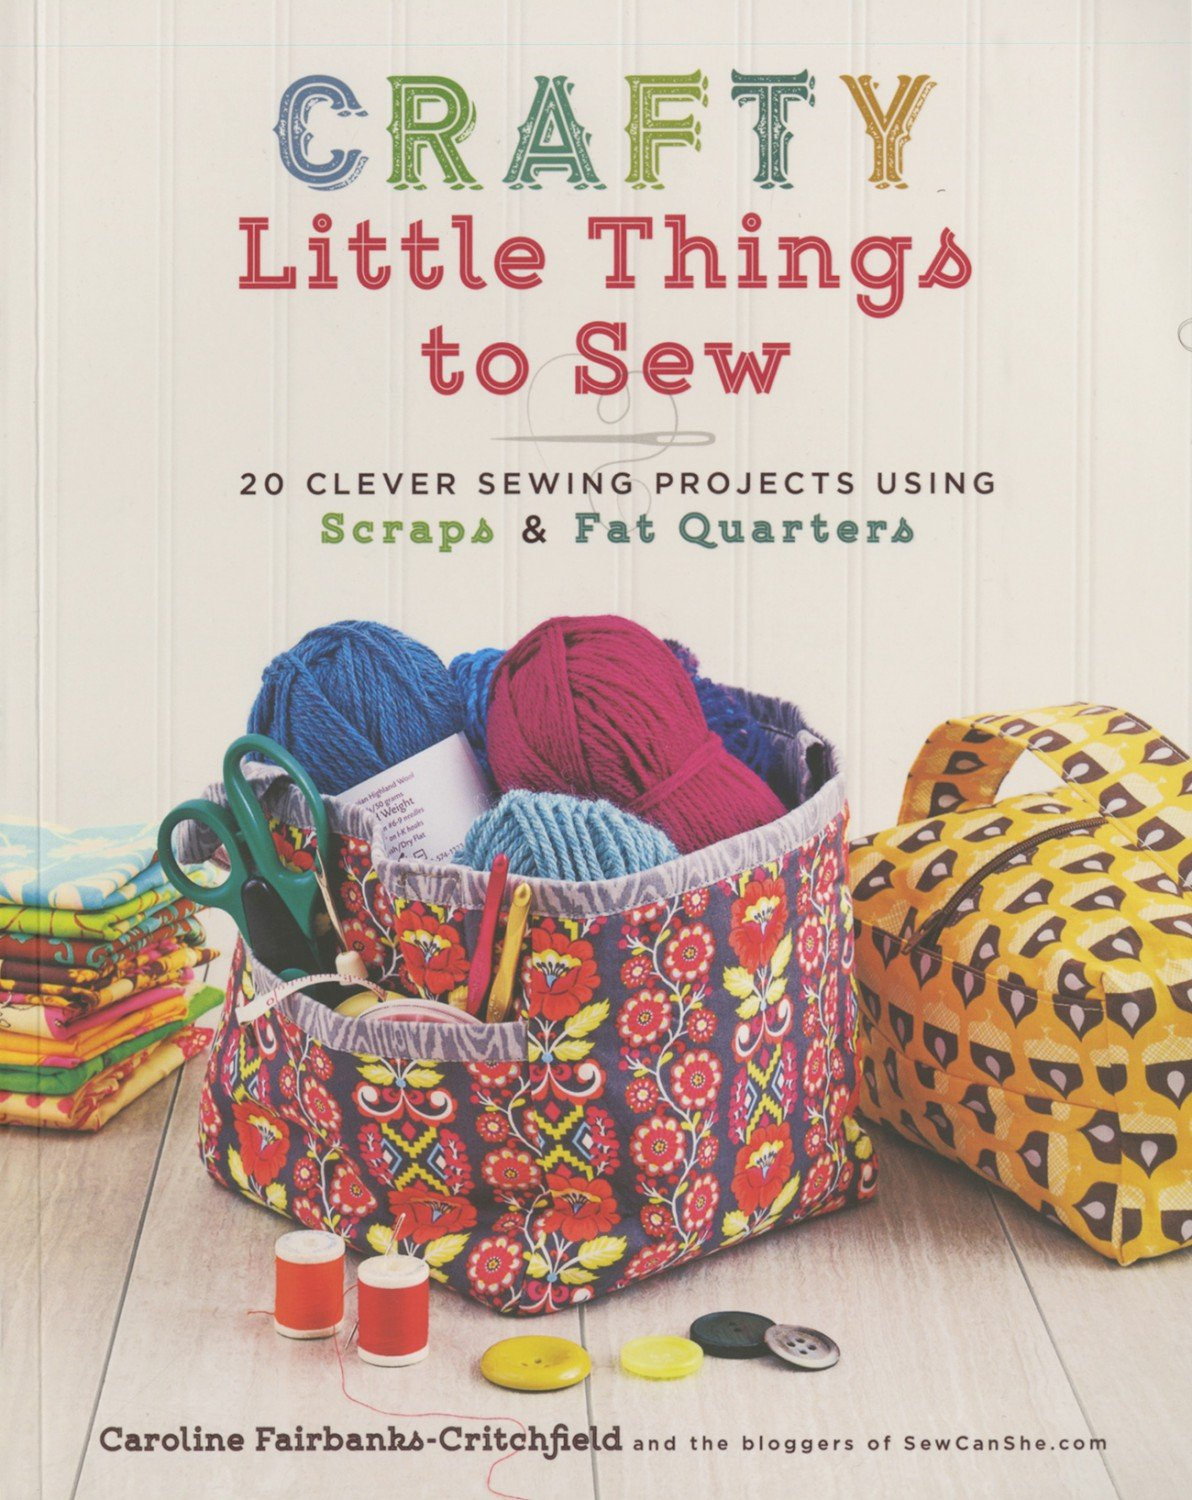 Crafty Little Things To Sew by Caroline Fairbanks-Critchfield